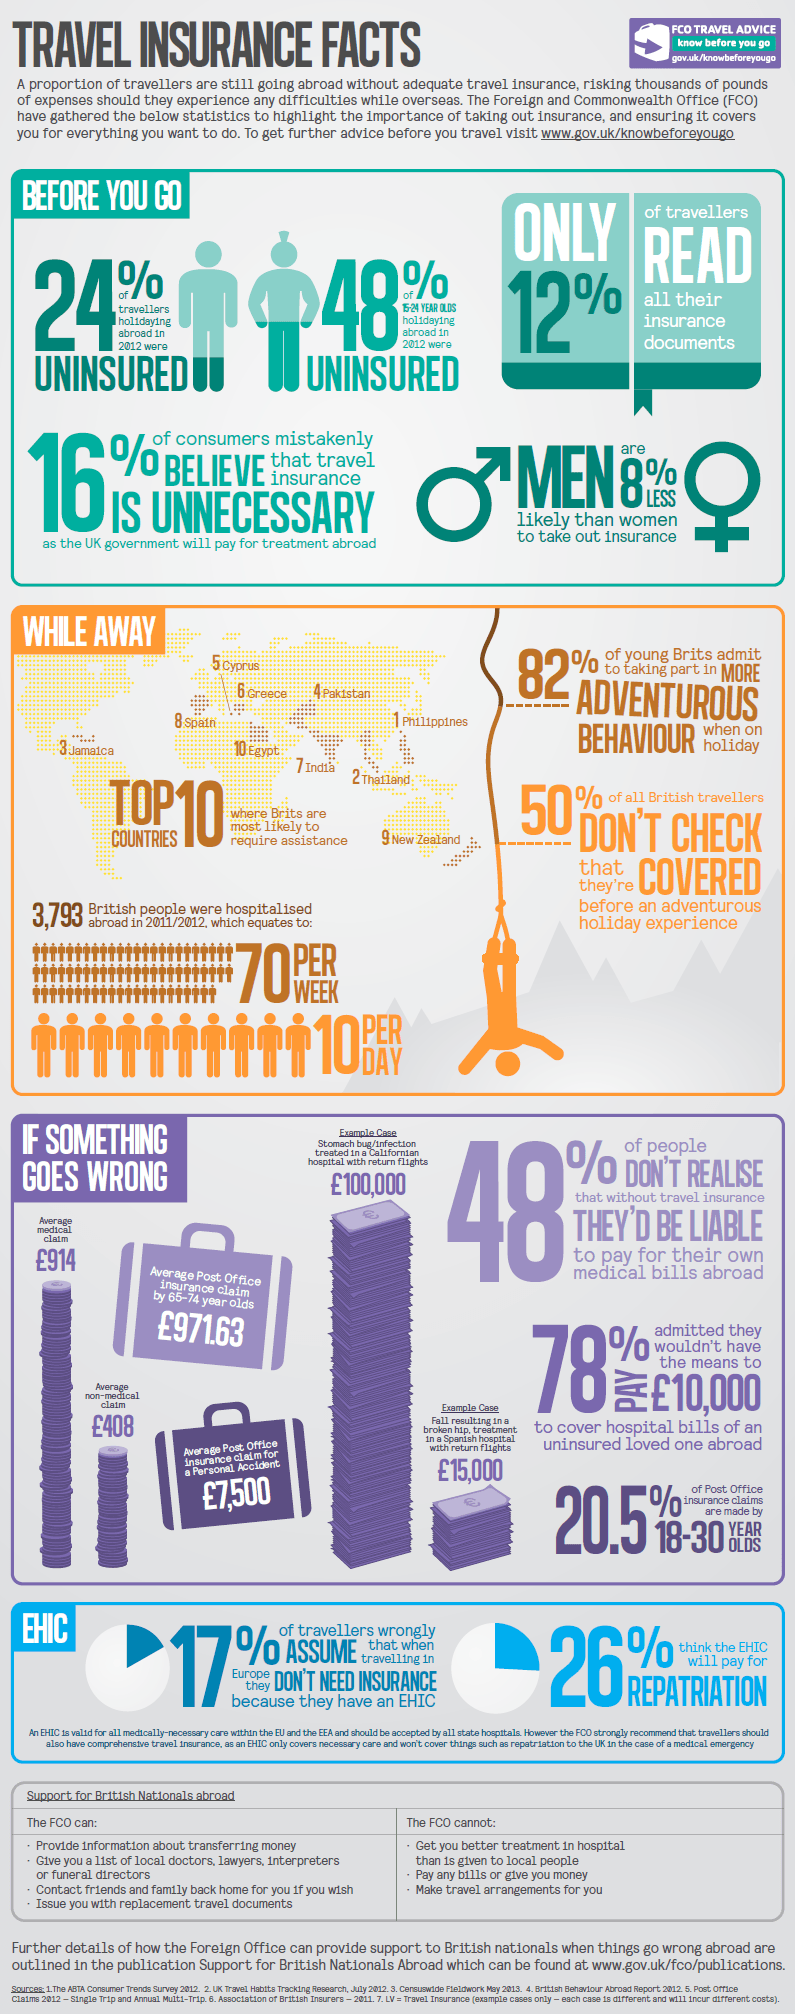 FCO: Travel Insurance Facts